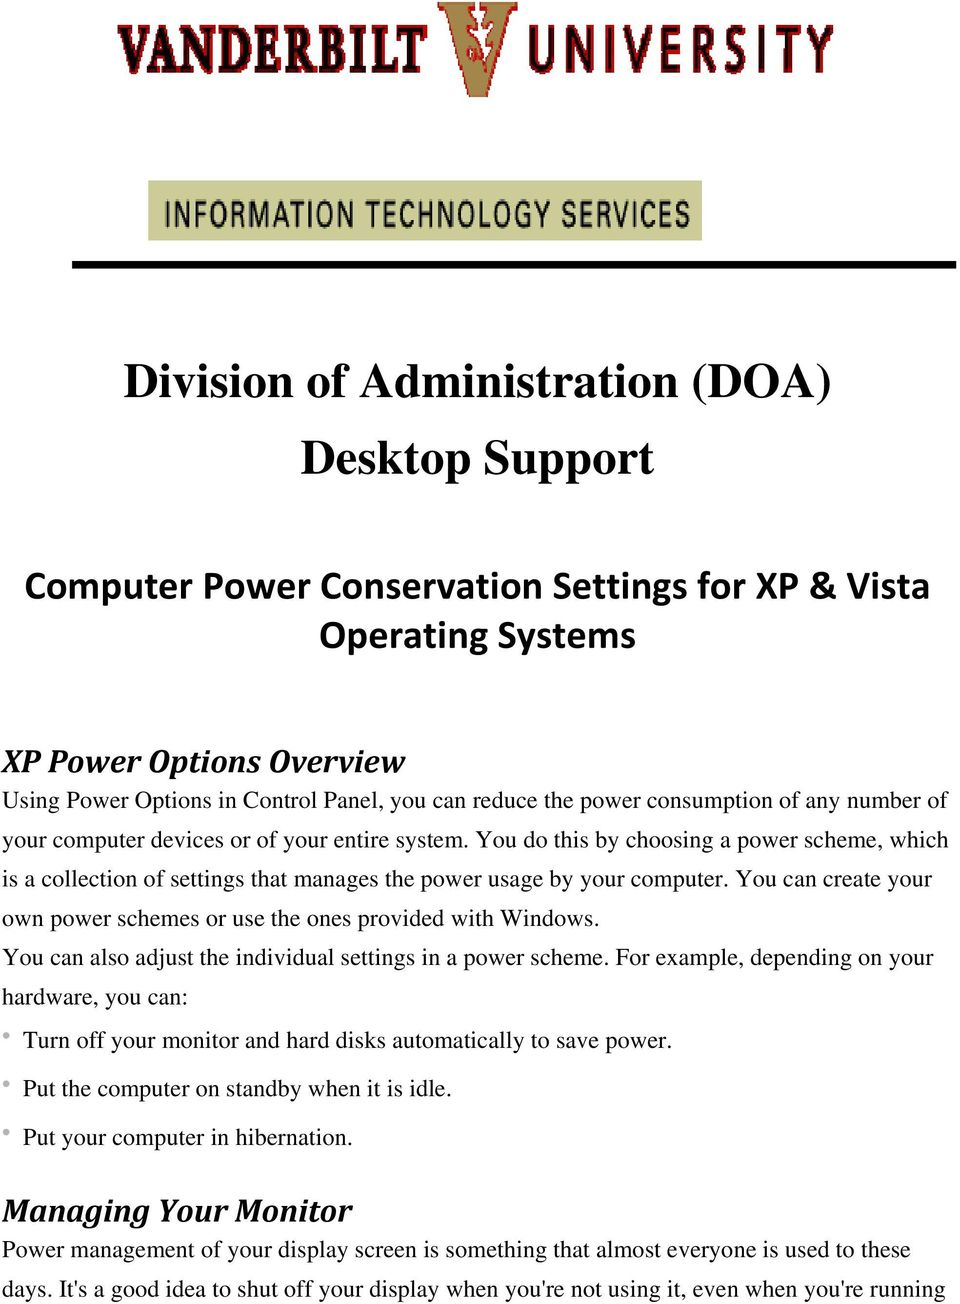 You do this by choosing a power scheme, which is a collection of settings that manages the power usage by your computer. You can create your own power schemes or use the ones provided with Windows.